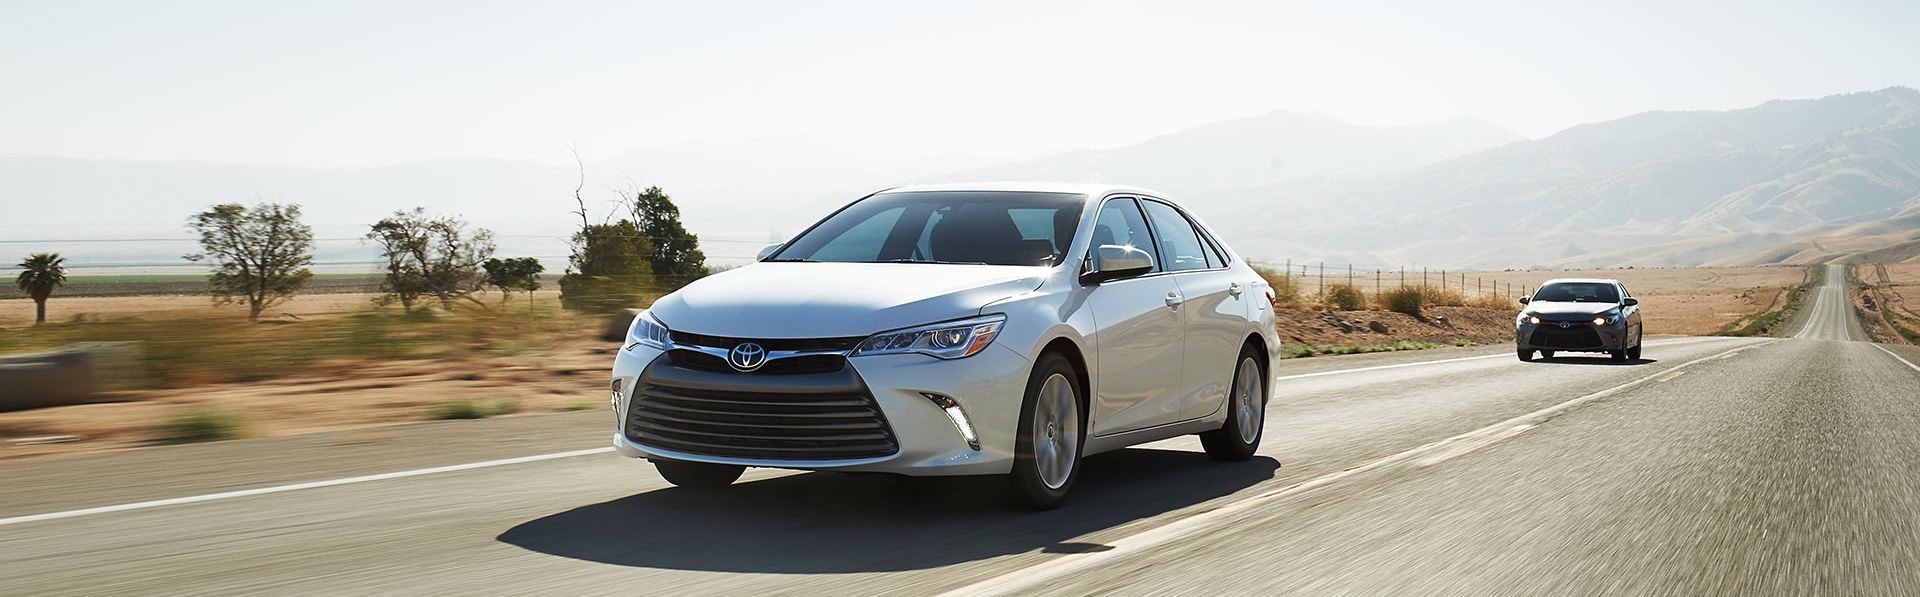 2017 toyota camry for sale near greenwich ct